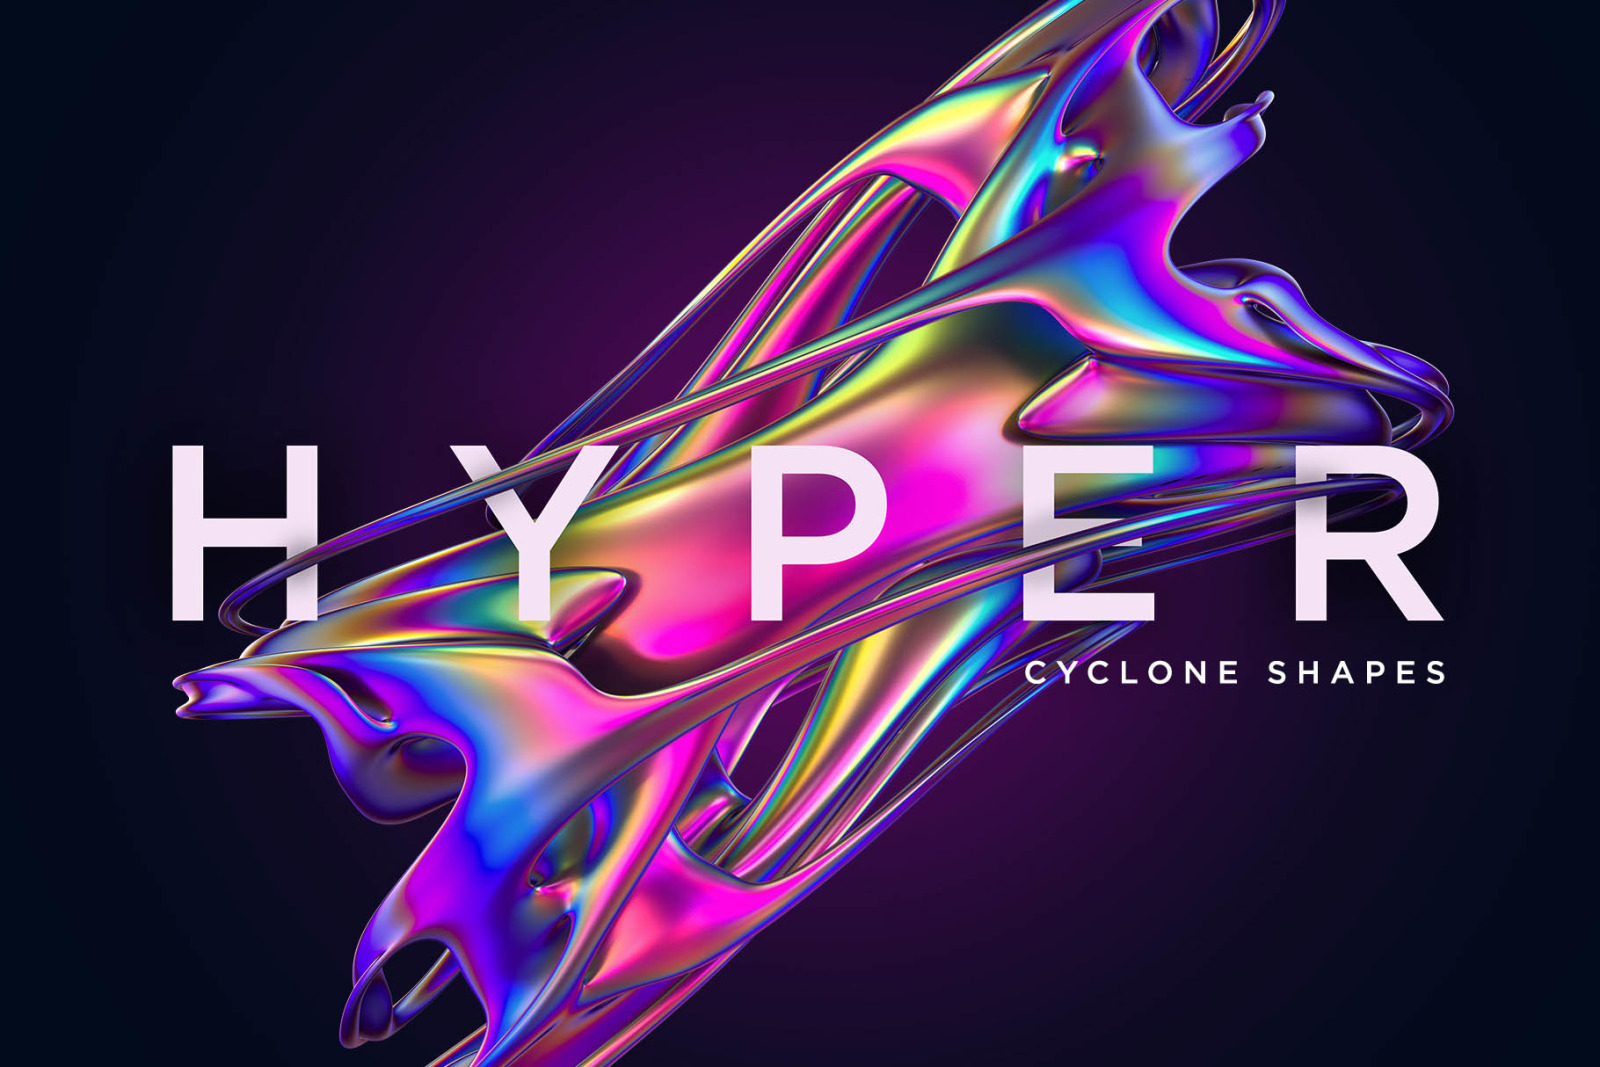 Hyper: Abstract Cyclone Shape